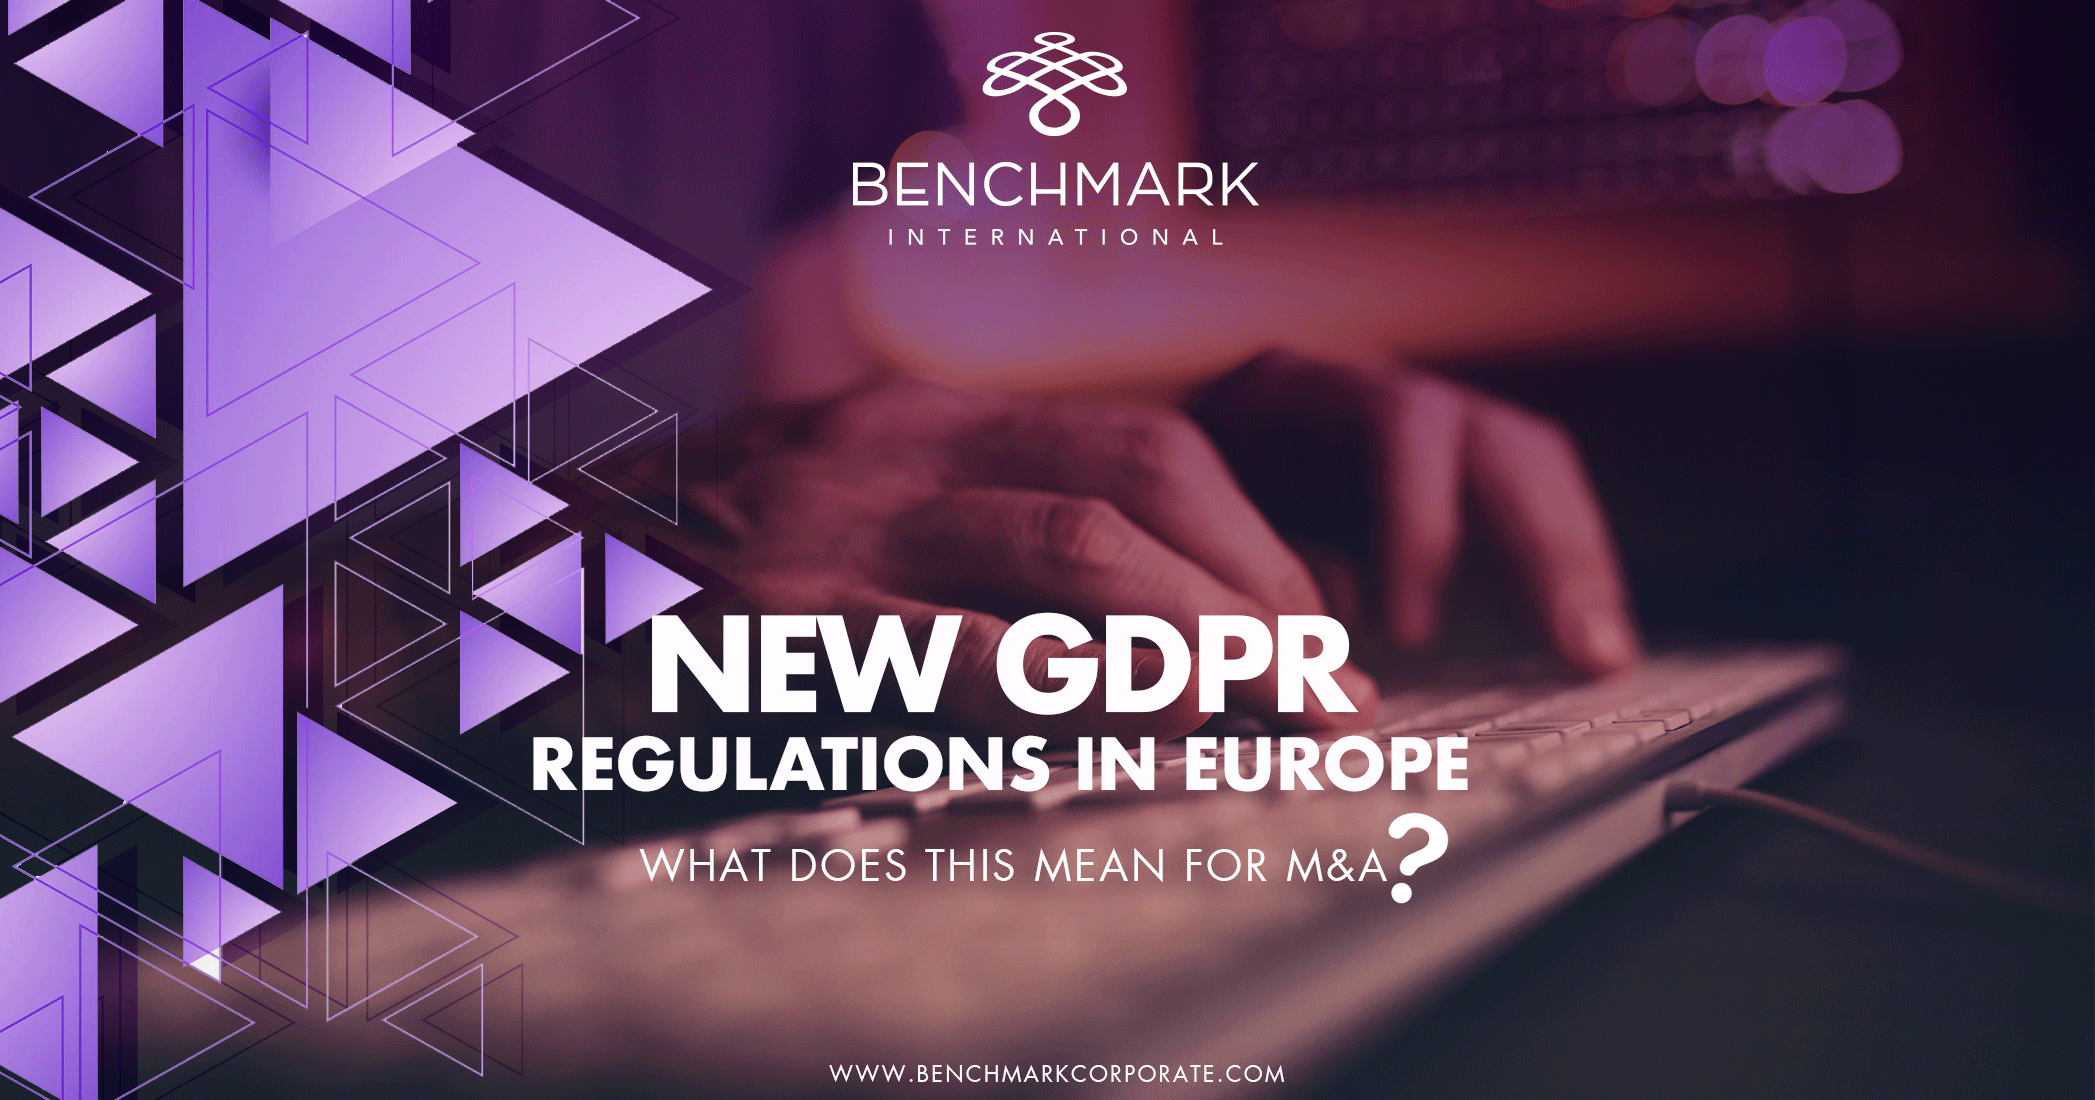 New GDP Regulations in Europe: What Does This Mean for M&A?